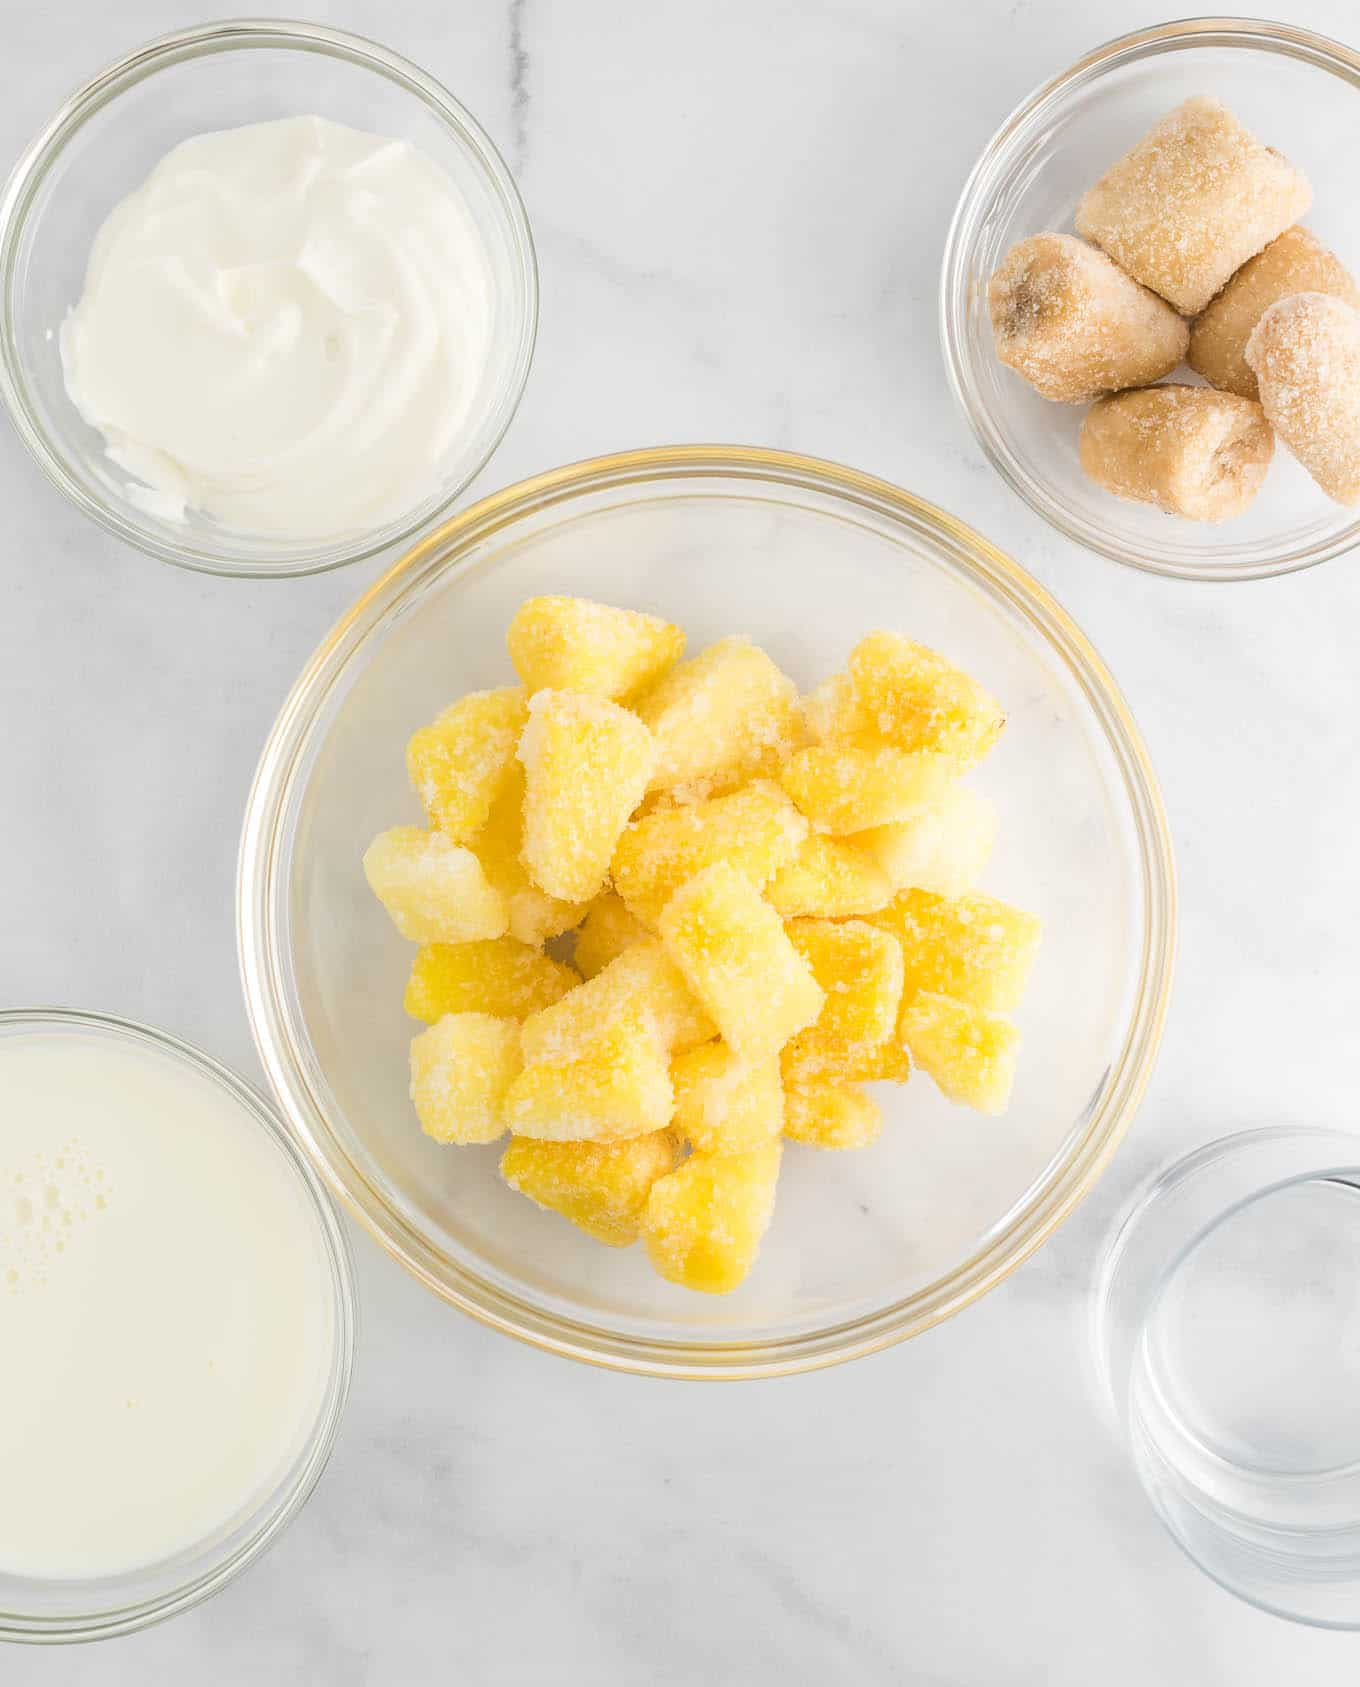 the ingredients in clear bowls - frozen pineapple chunks, greek yogurt, frozen banana chunks, and milk